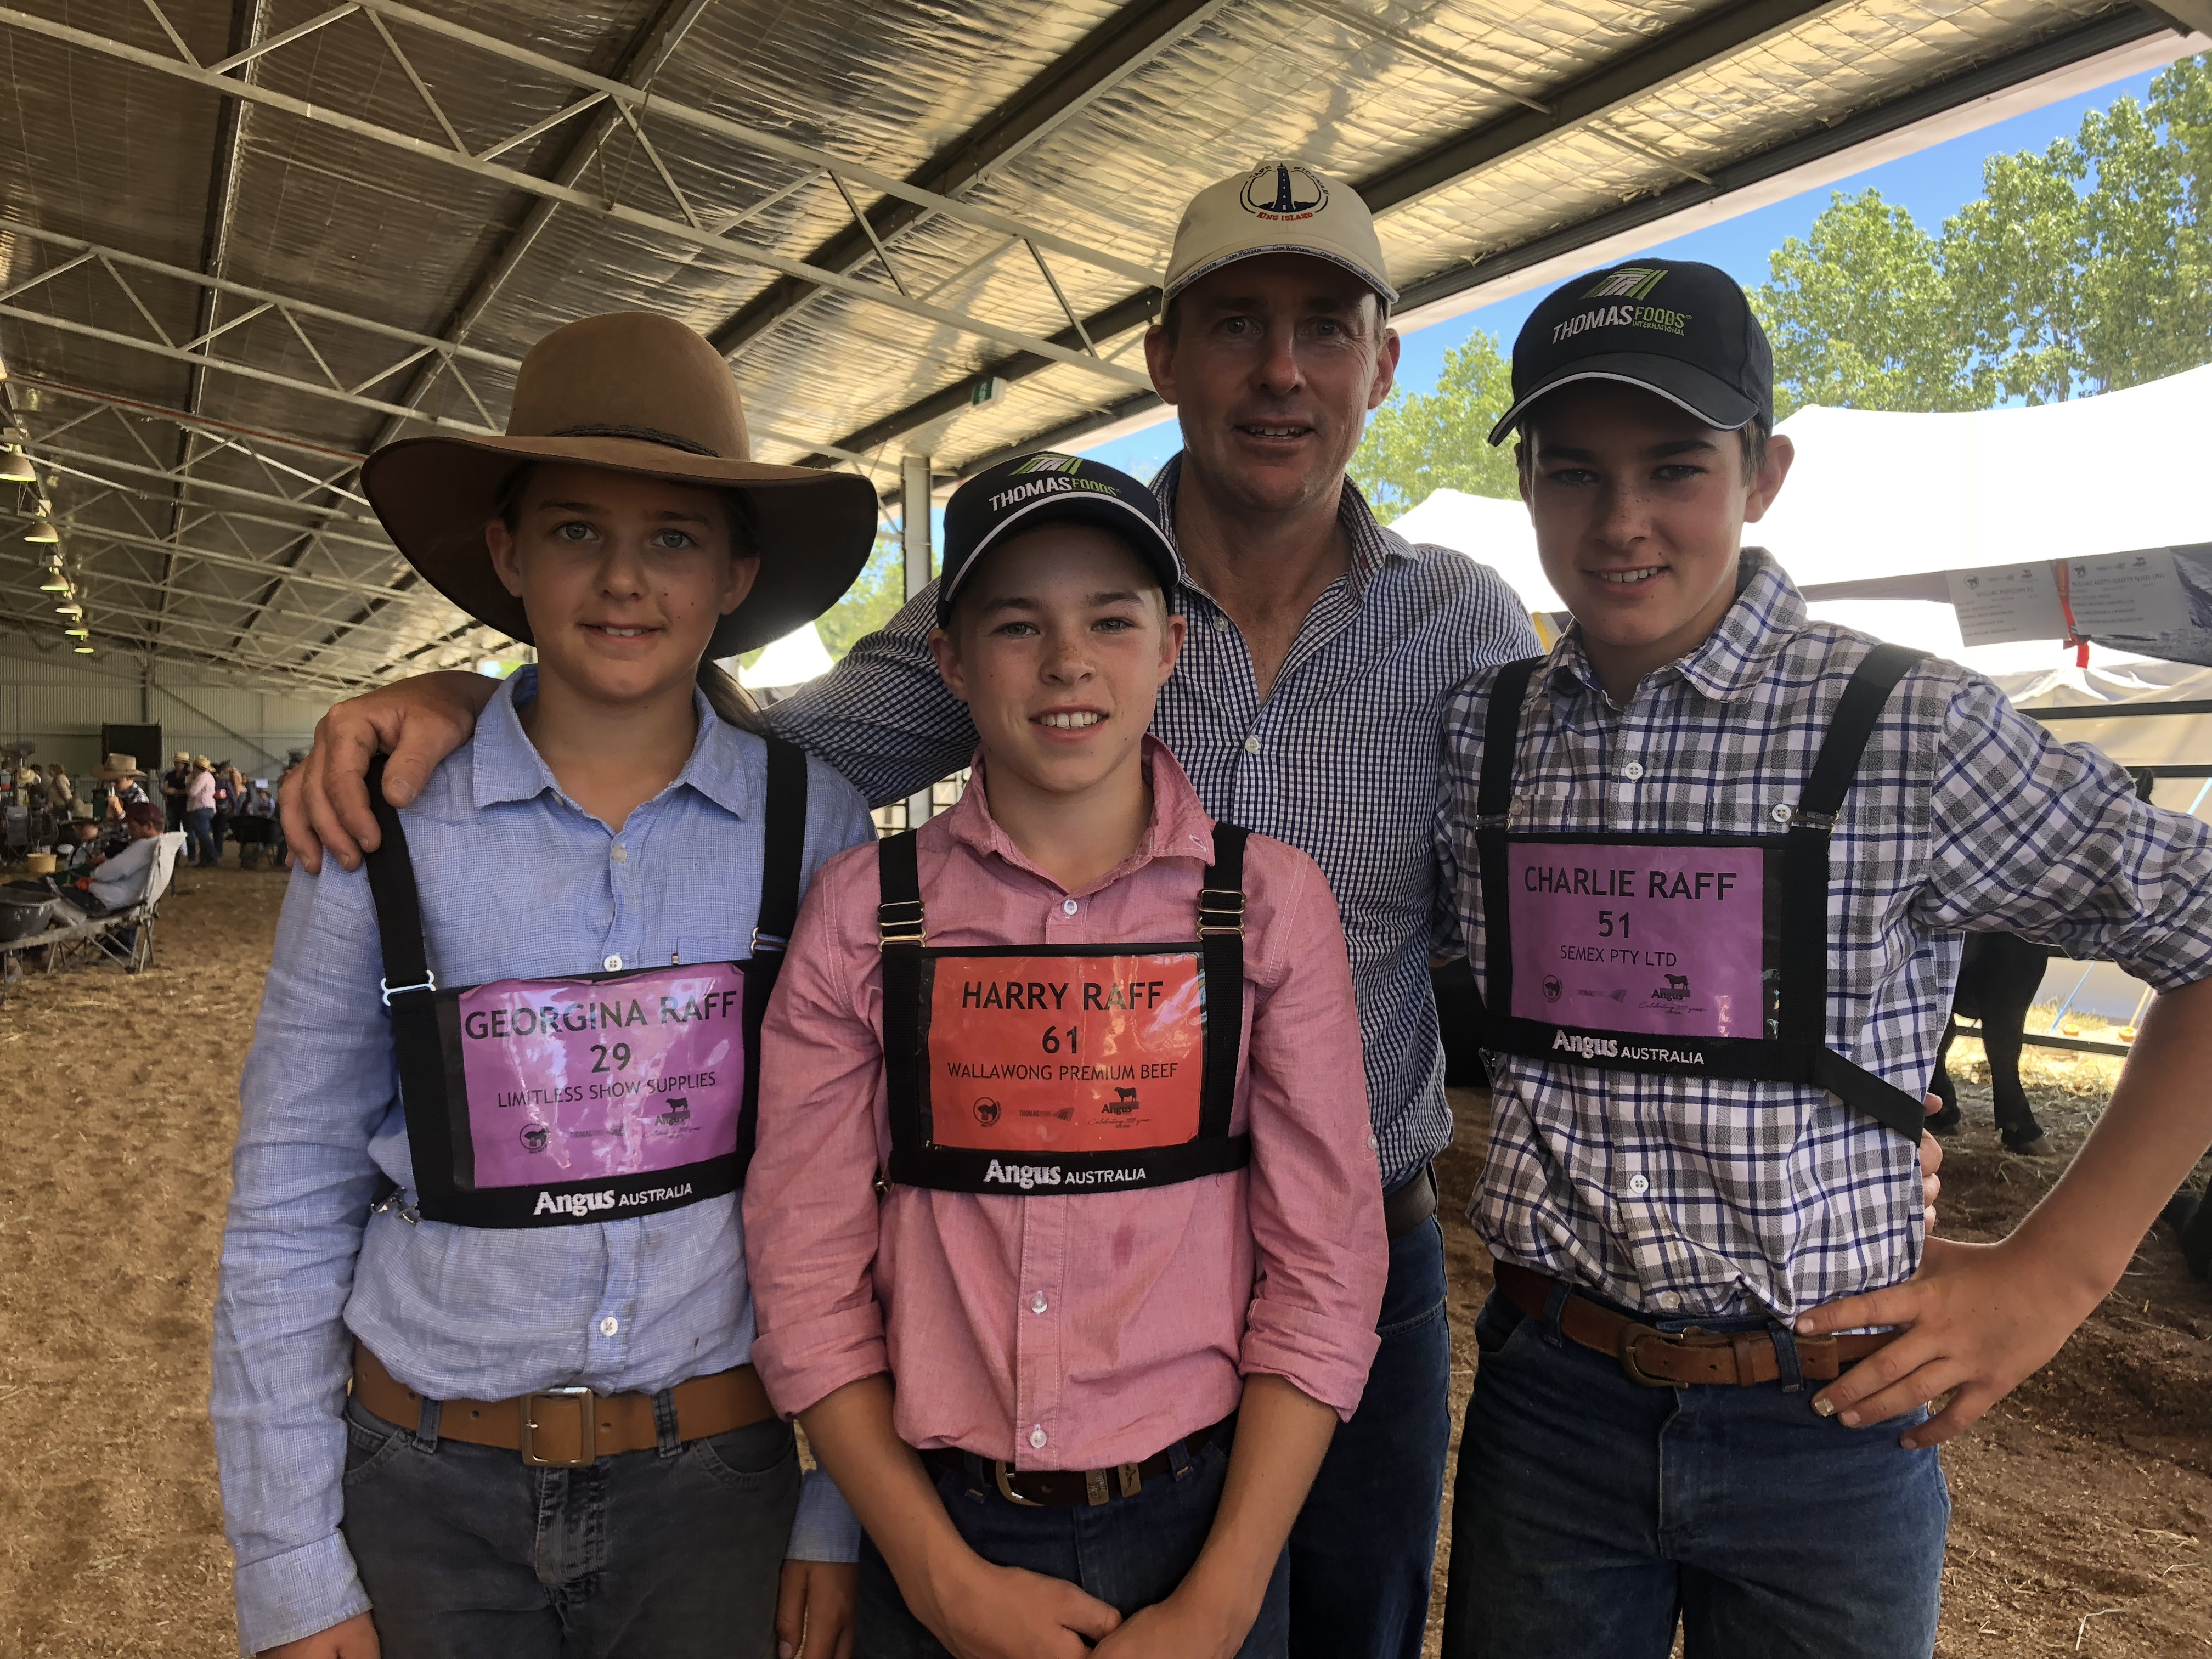 Georgina, Harry, Andrew and Charlie Raff at the 2019 Thomas Foods International Angus Youth Roundup